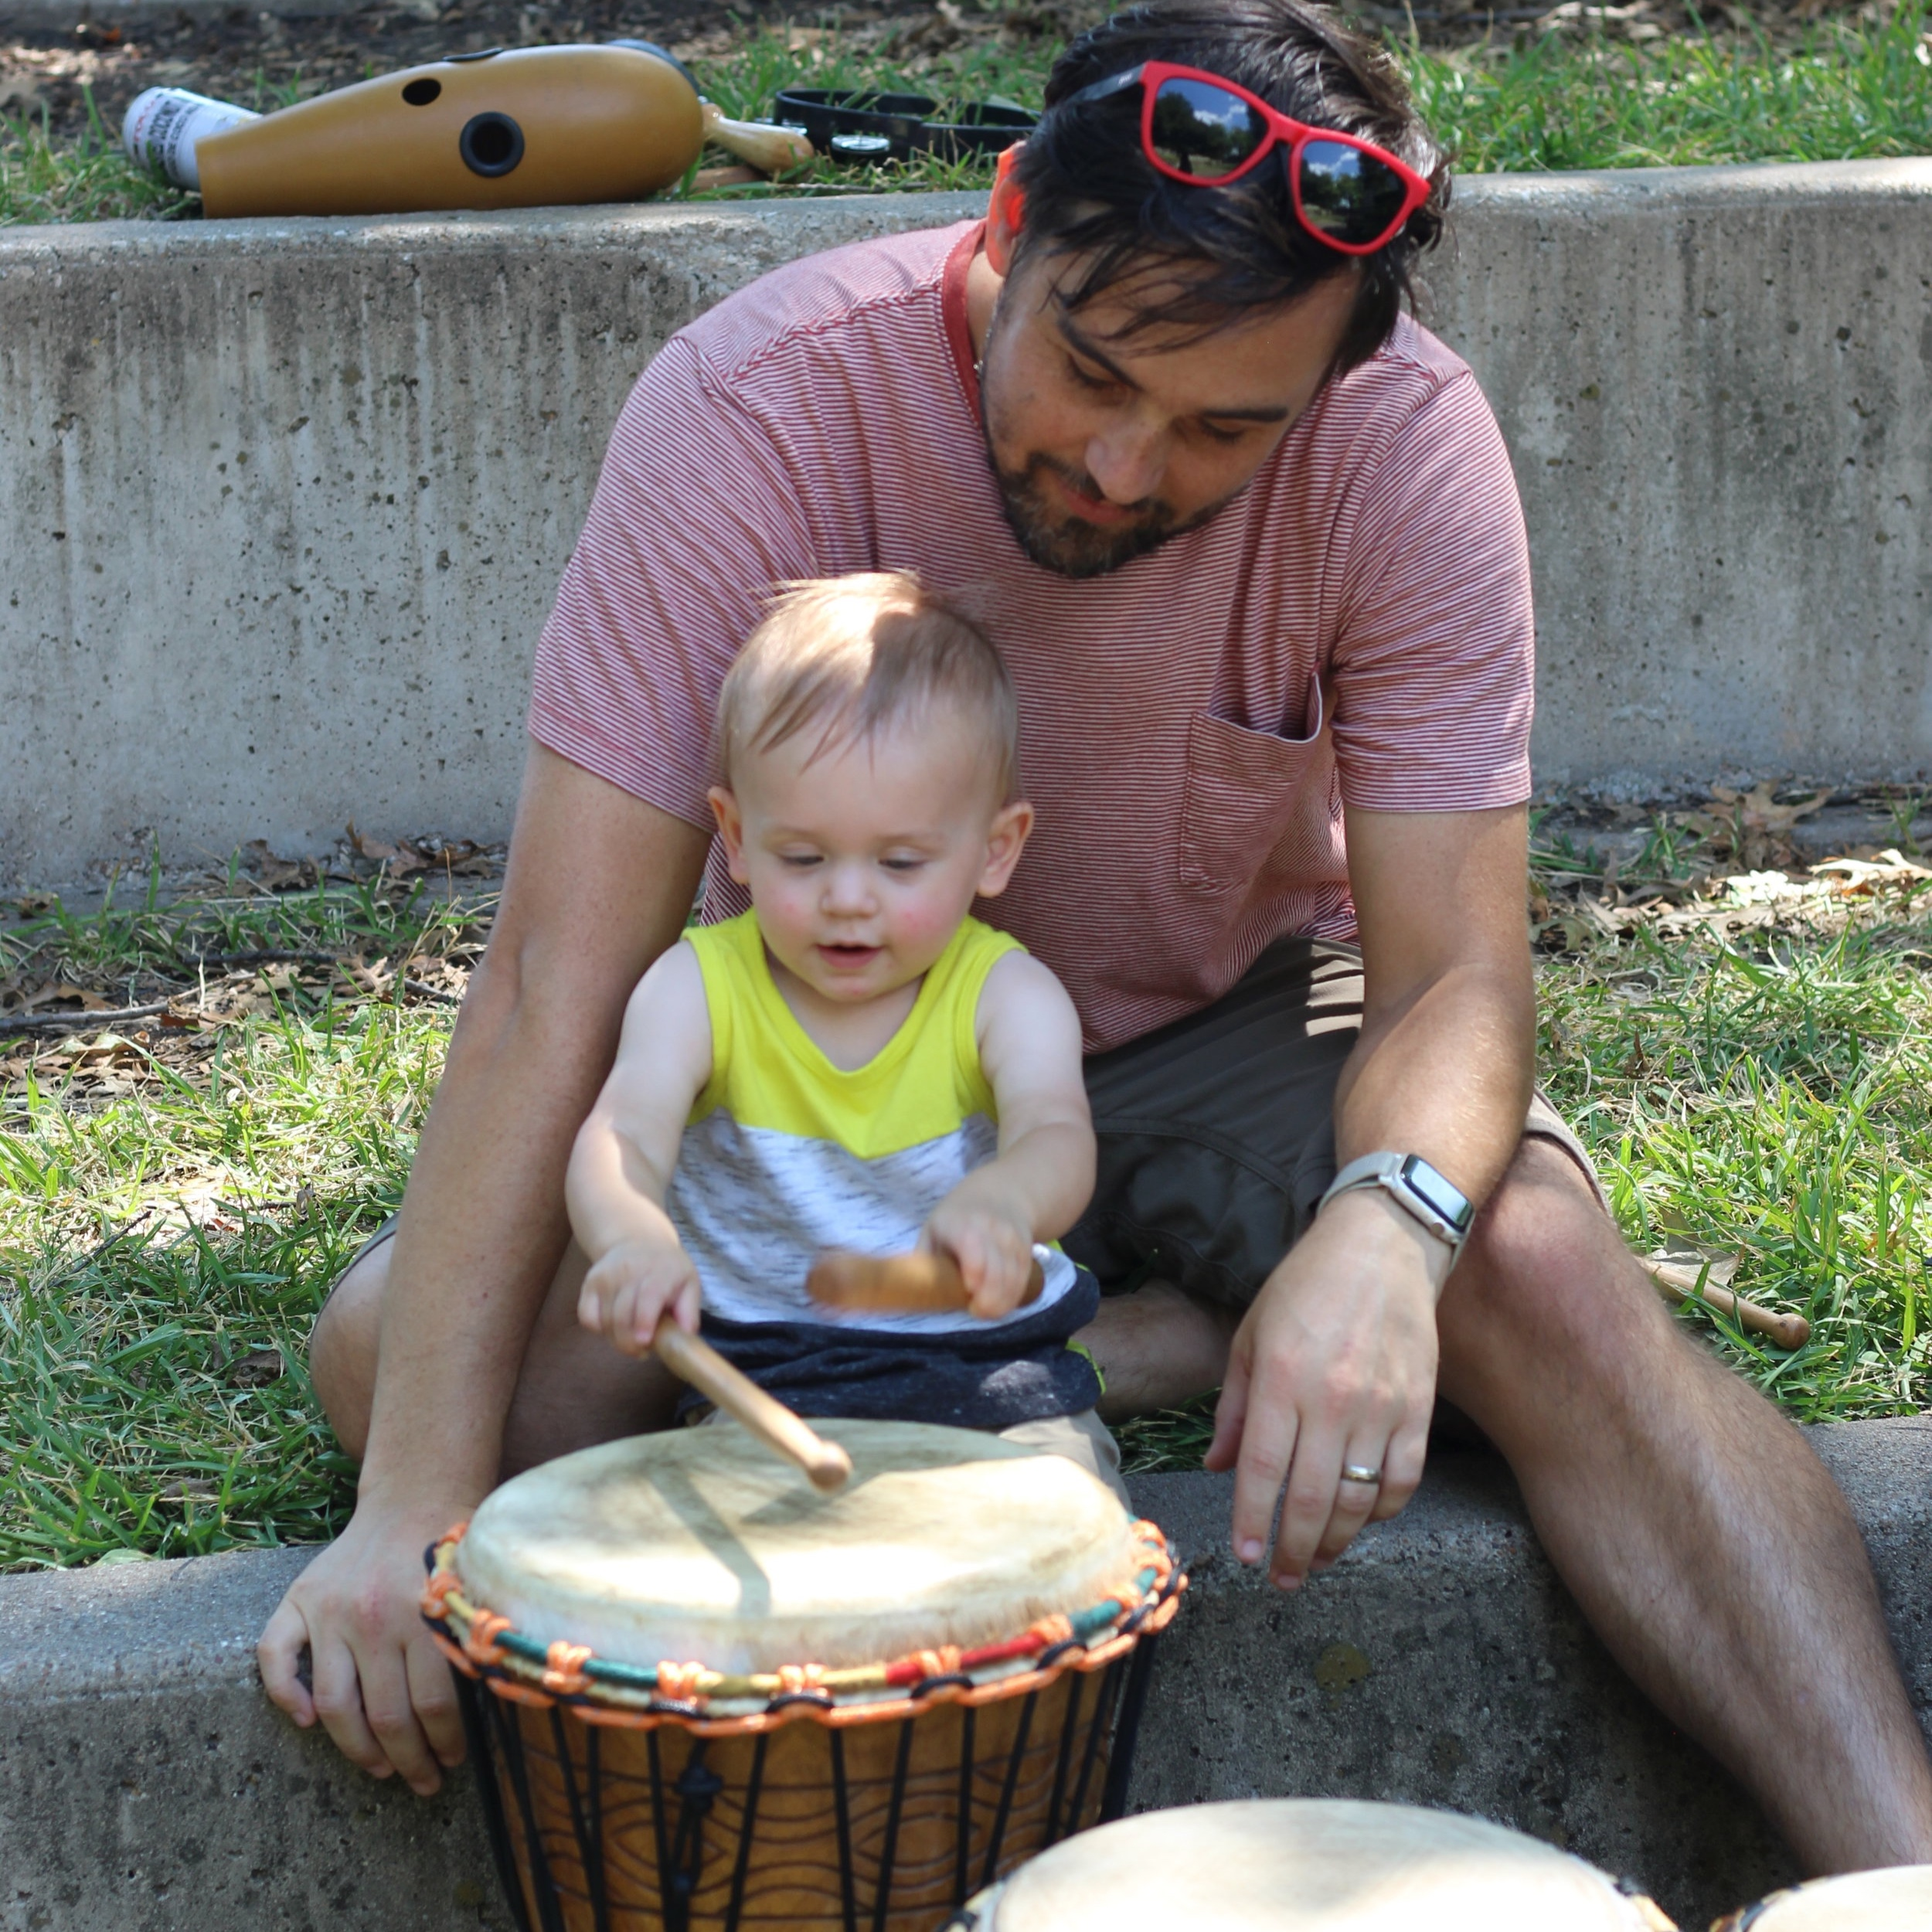 - Our drums circles & jam sessions provide an interactive experience for all ages. Drum circles require no previous experience and bring instant fun and community connection. This is a powerful musical experience that brings together diverse communities for the common good of collaborative music-making